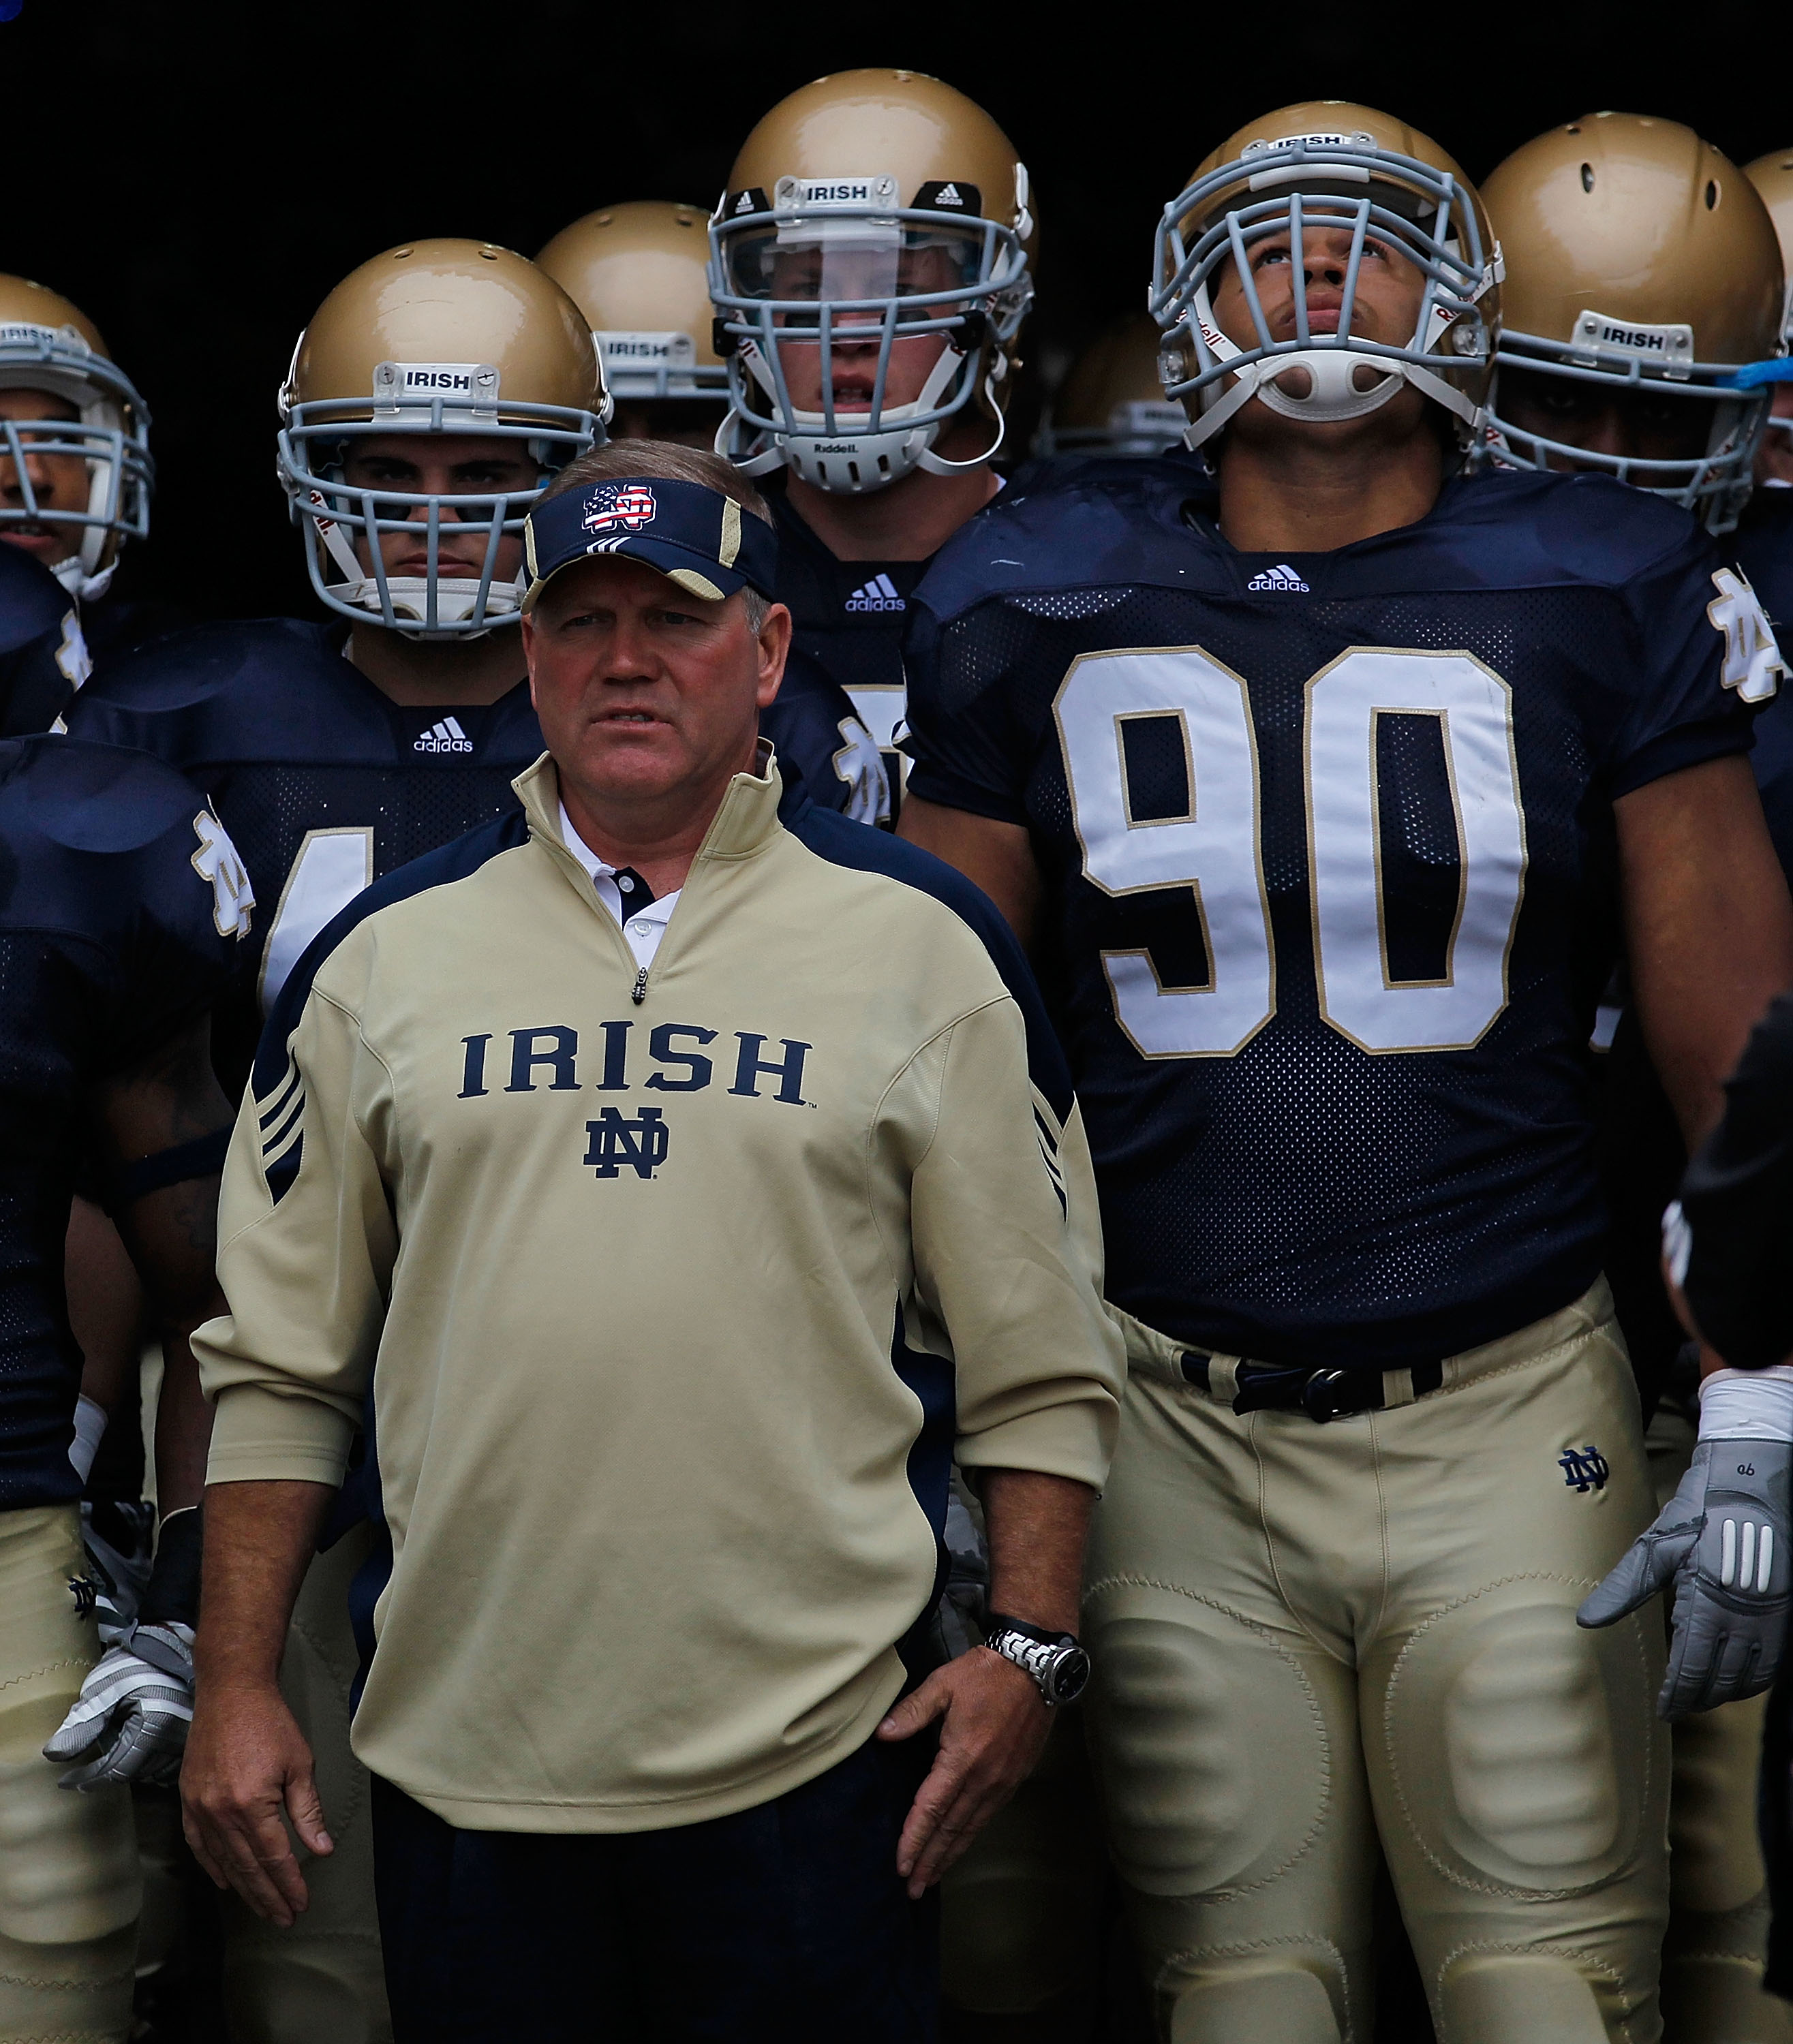 SOUTH BEND, IN - SEPTEMBER 11: Head coach Brian Kelly of the Notre Dame Fighting Irish waits to enter the field with his team including Carlo Calabrese #44 and Ethan Johnson #90 before a game against the Michigan Wolverines at Notre Dame Stadium on Septem